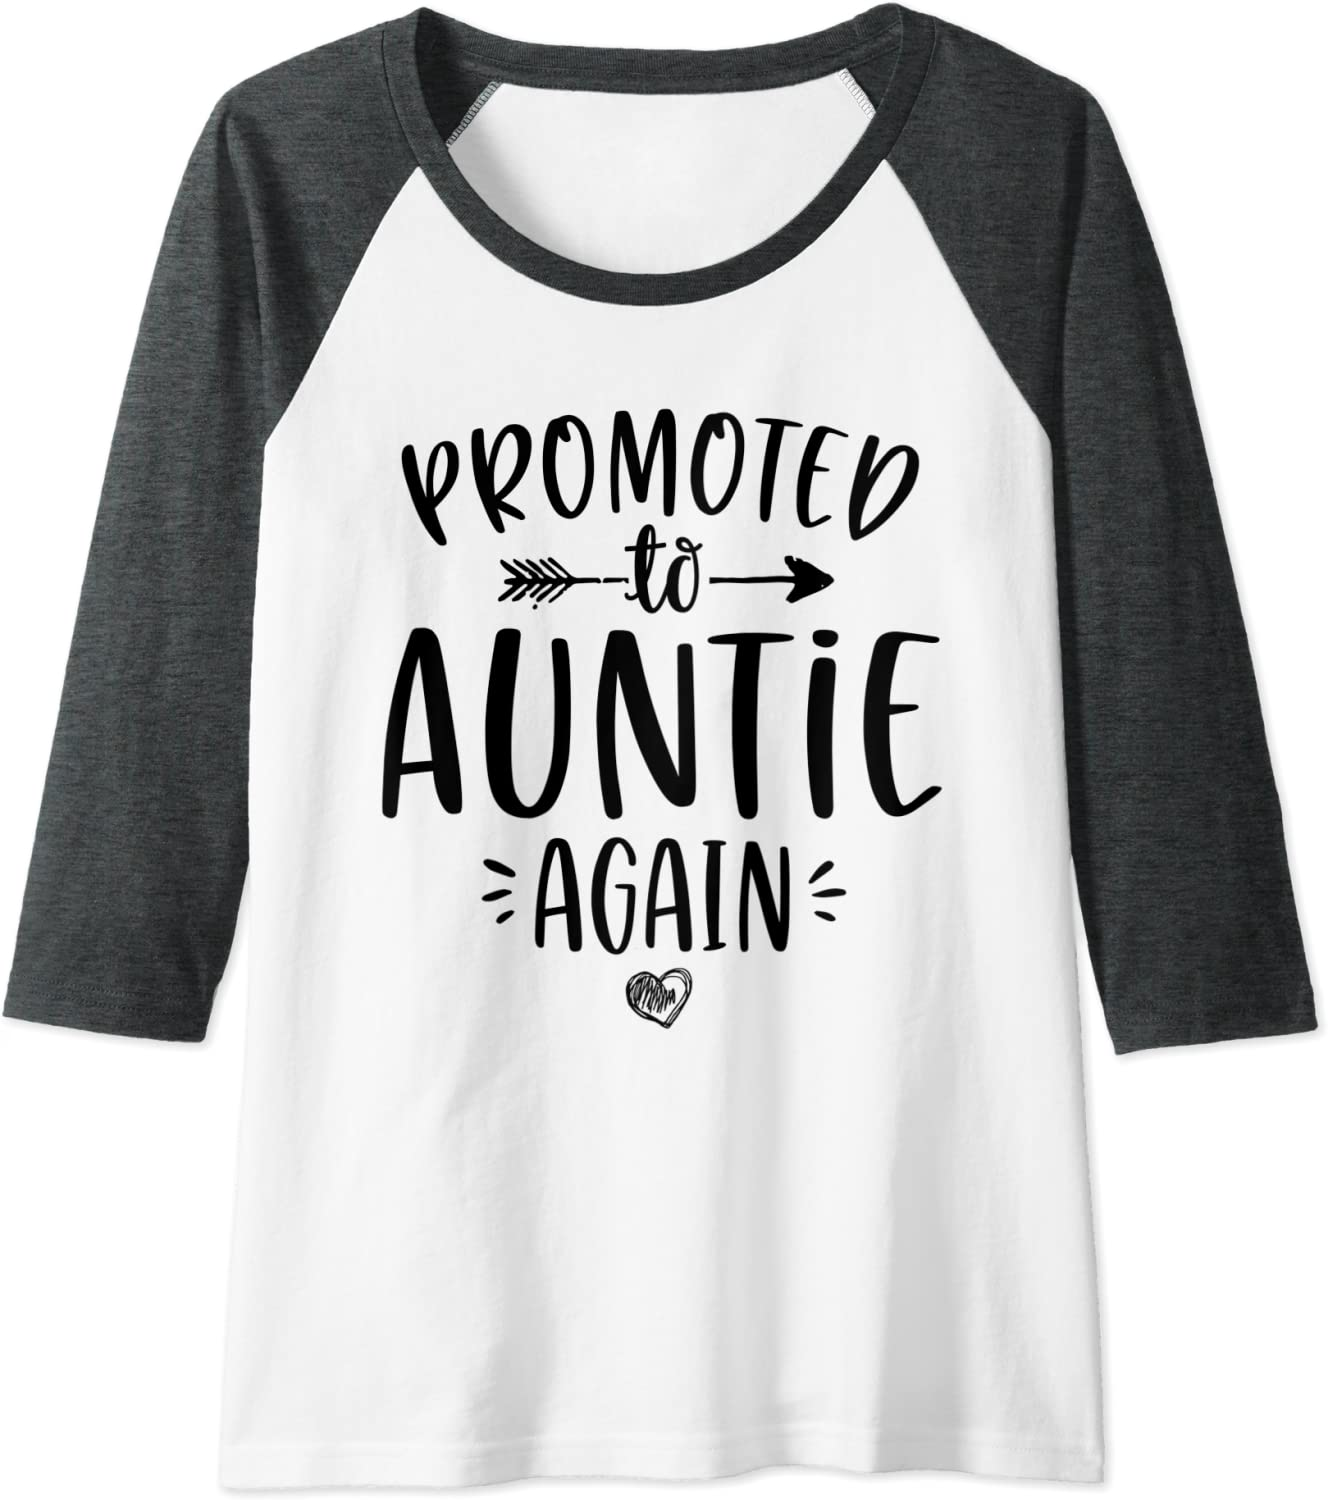 Promoted To Auntie T Shirt Aunt Gift Best Aunt Tee Gift For Sister Aunt T- Shirt Mothers Day Gift Auntie Shirt Sister T-Shirt